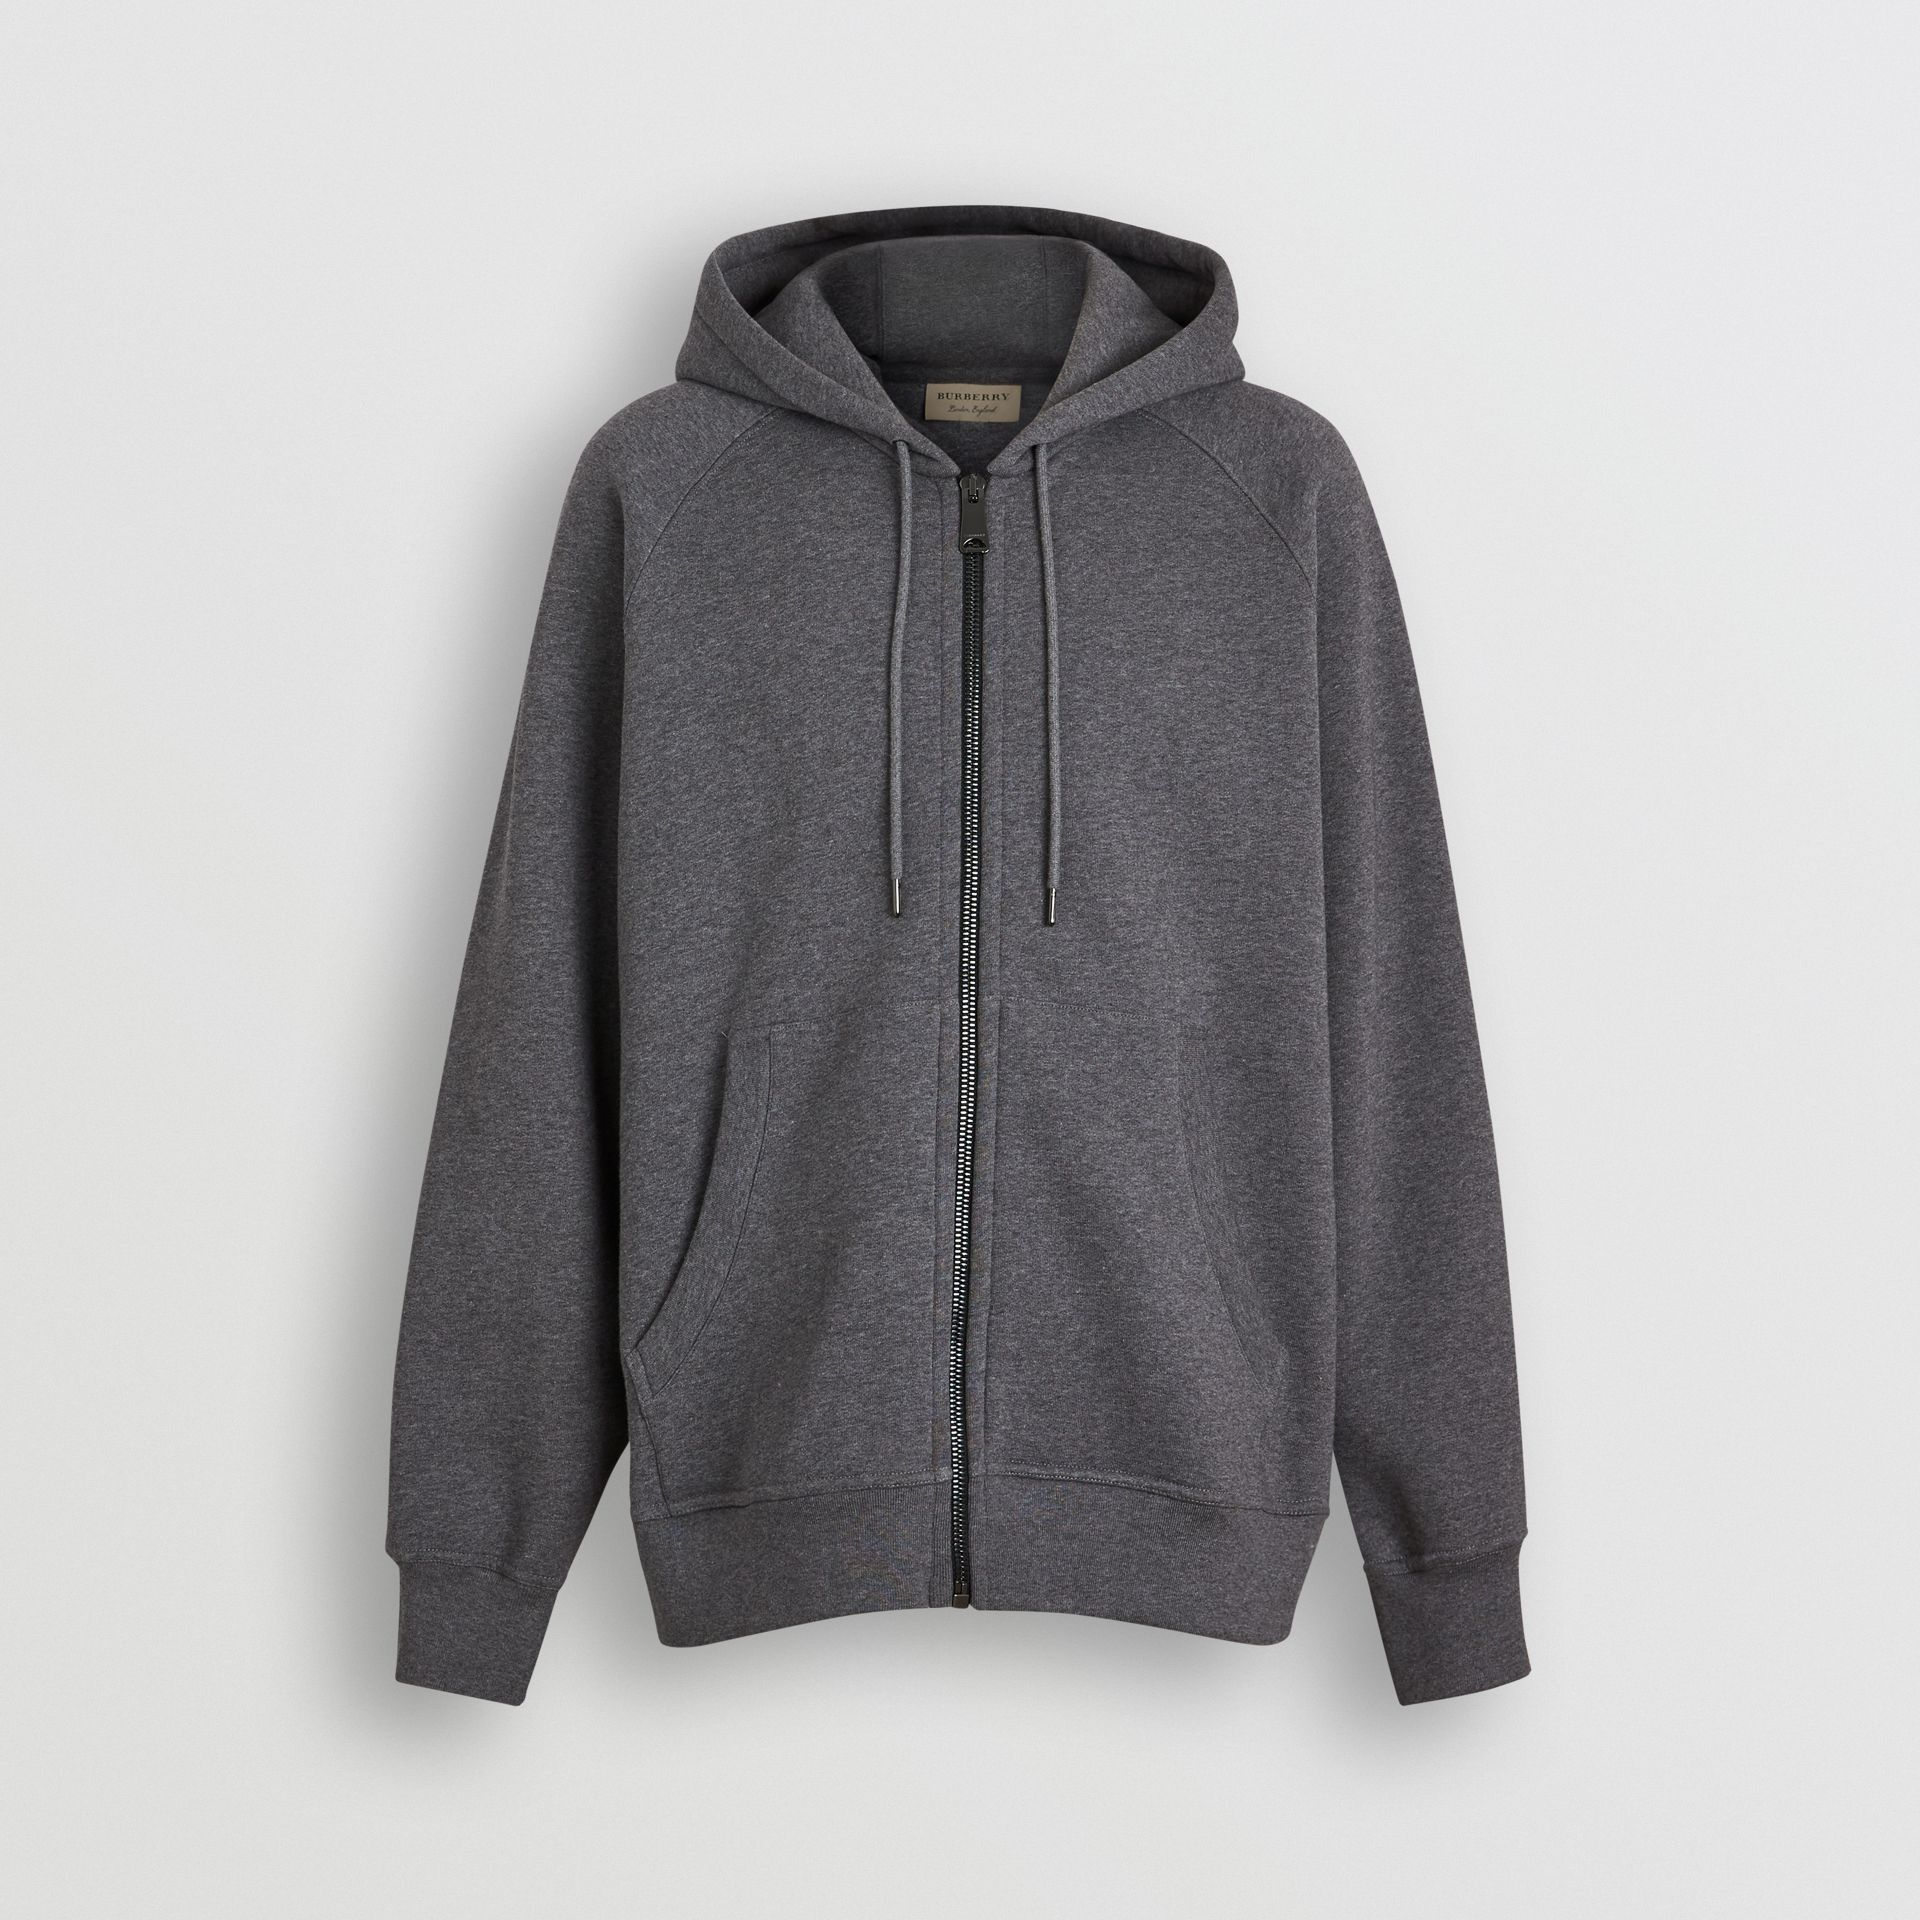 Embroidered Logo Jersey Hooded Top in Mid Grey Melange - Men | Burberry Australia - gallery image 3